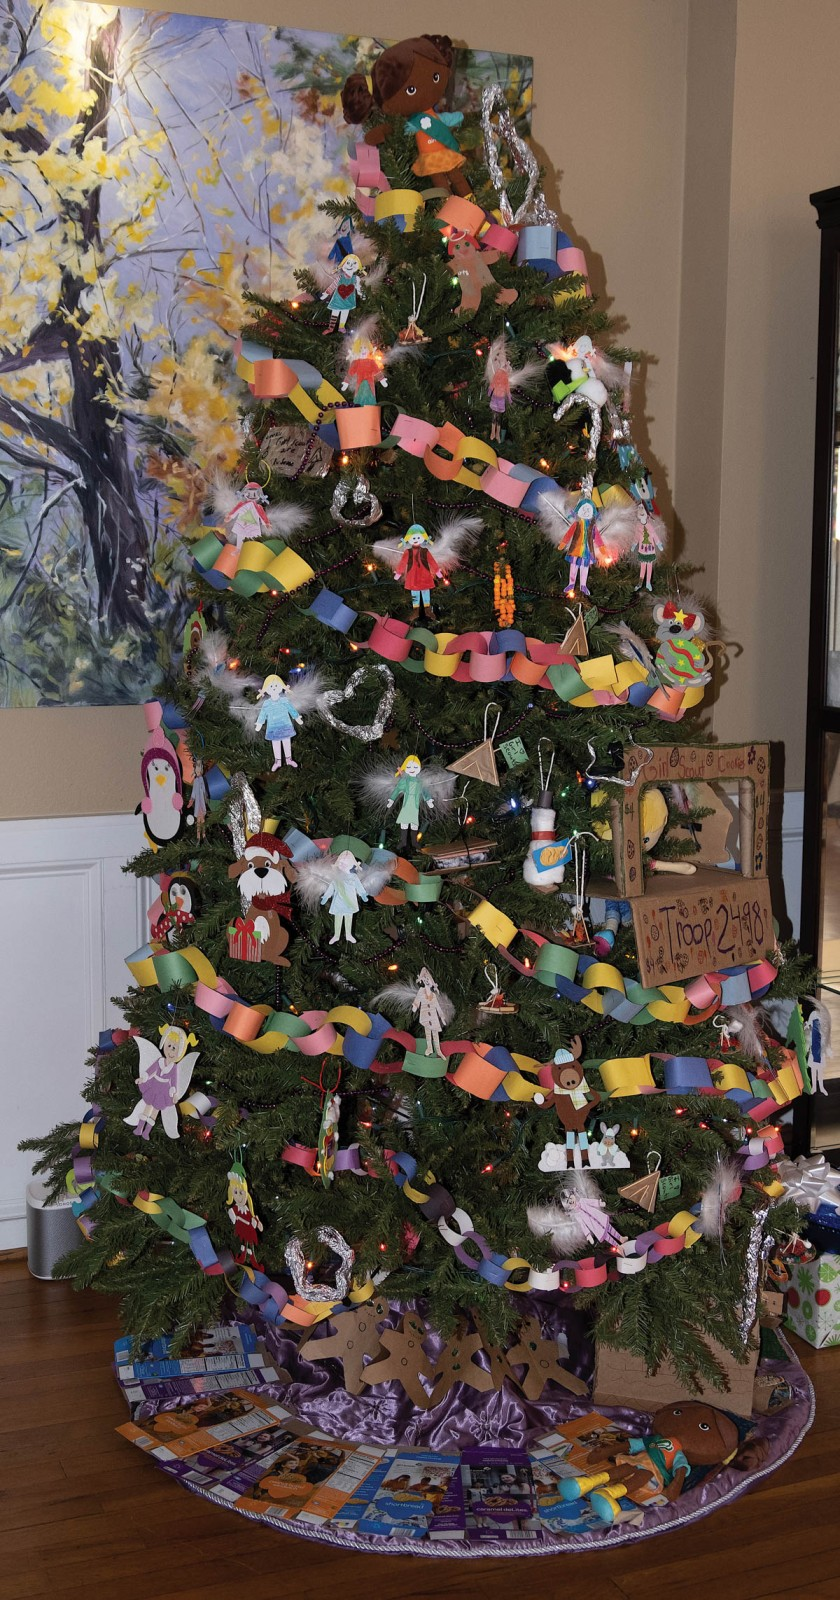 The Girl Scout Tree at The Monte Vista Hotel in Black Mountain. Photo by Matthew Kraus